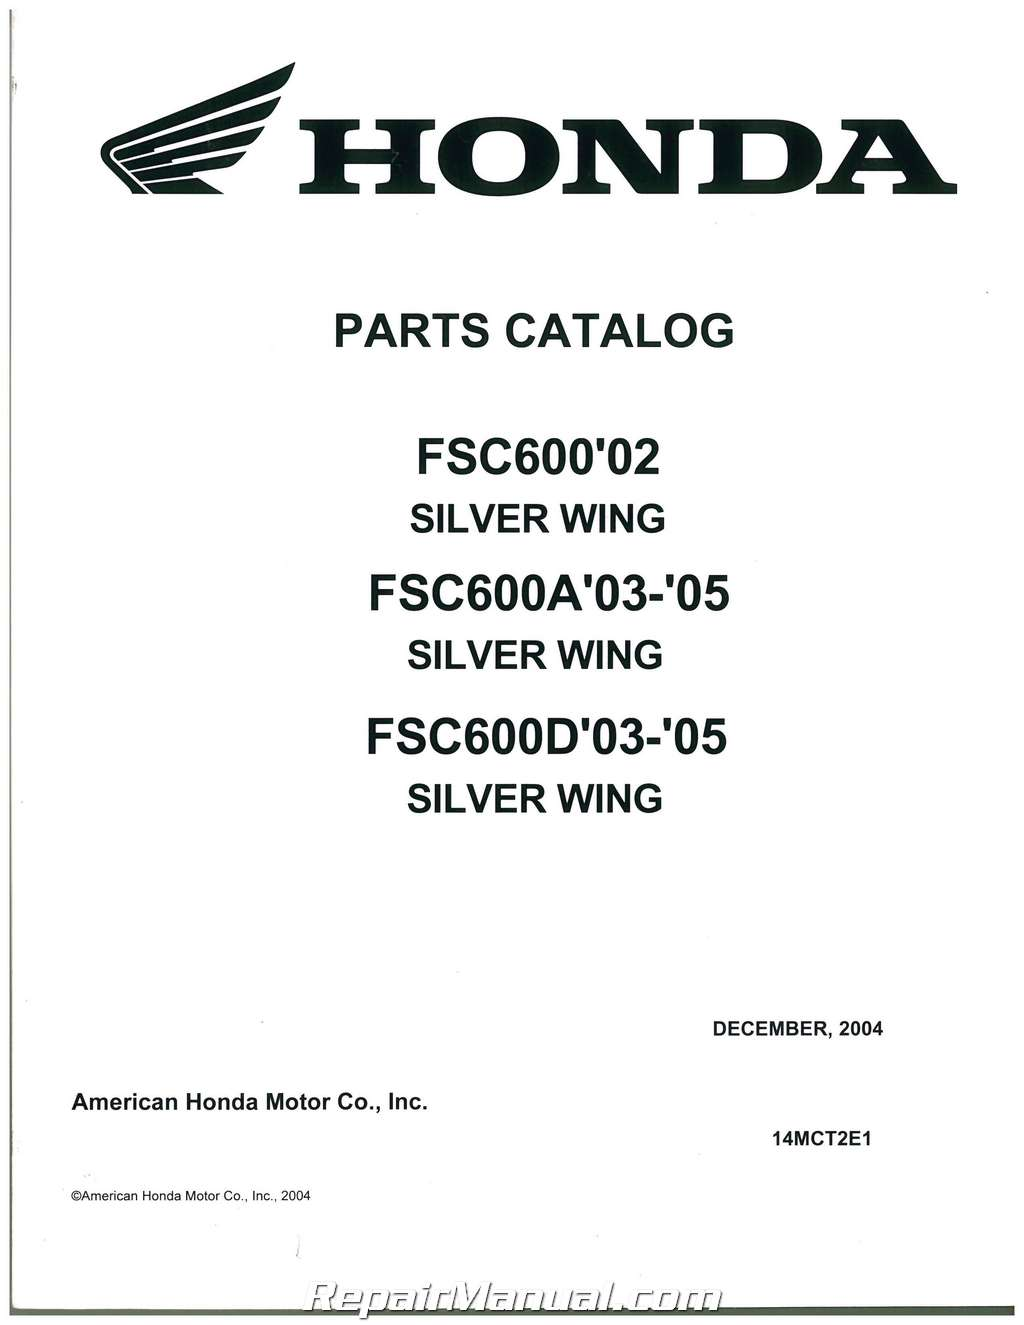 2002-2005 Honda FSC600 Silver Wing Motorcycle Parts Manual